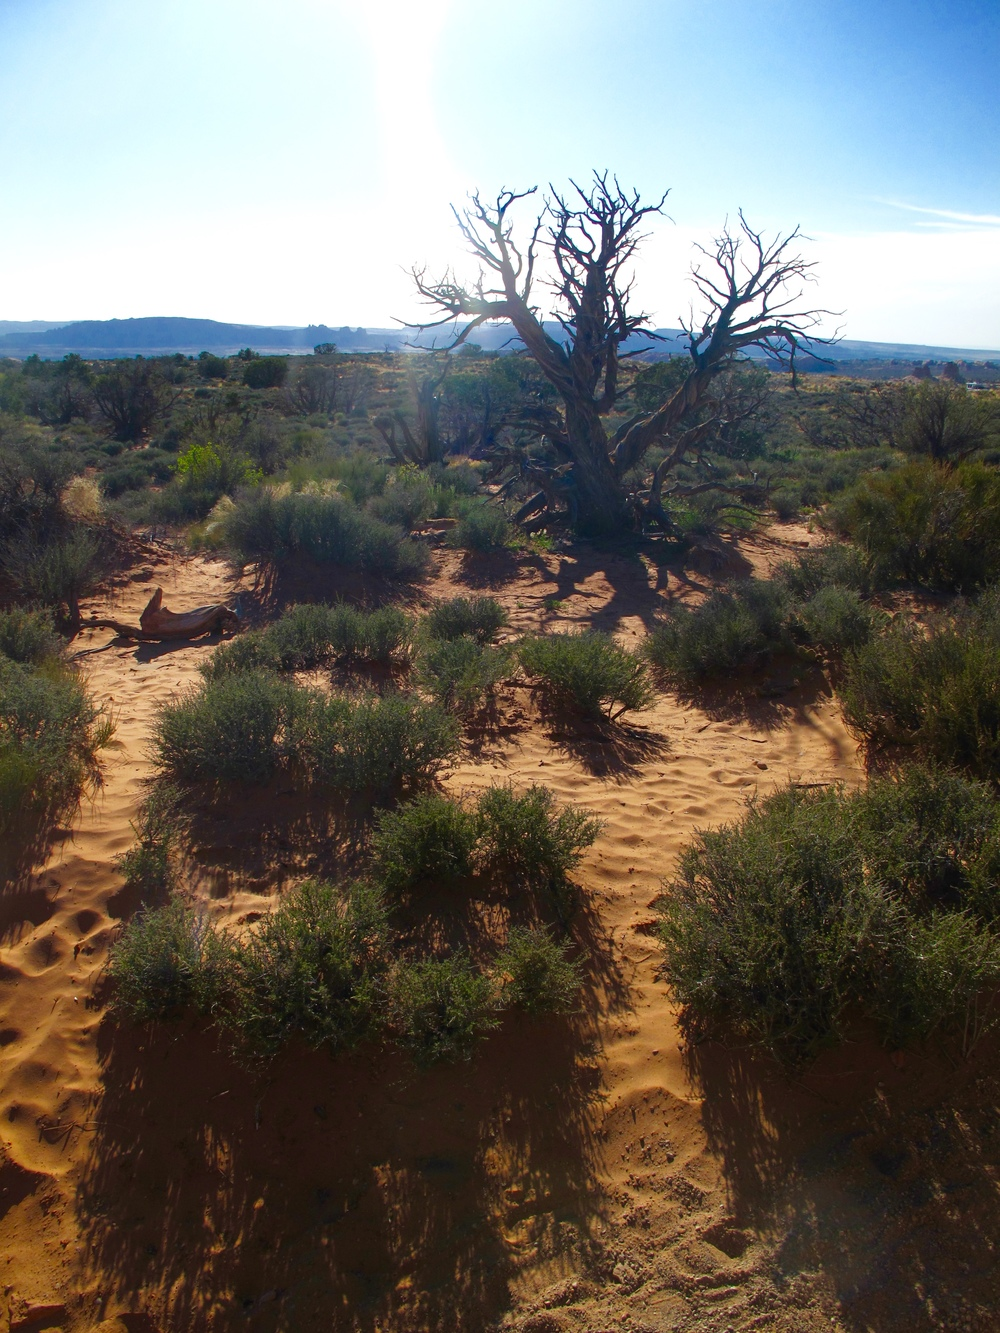 Dry desert tree and sand, Utah.